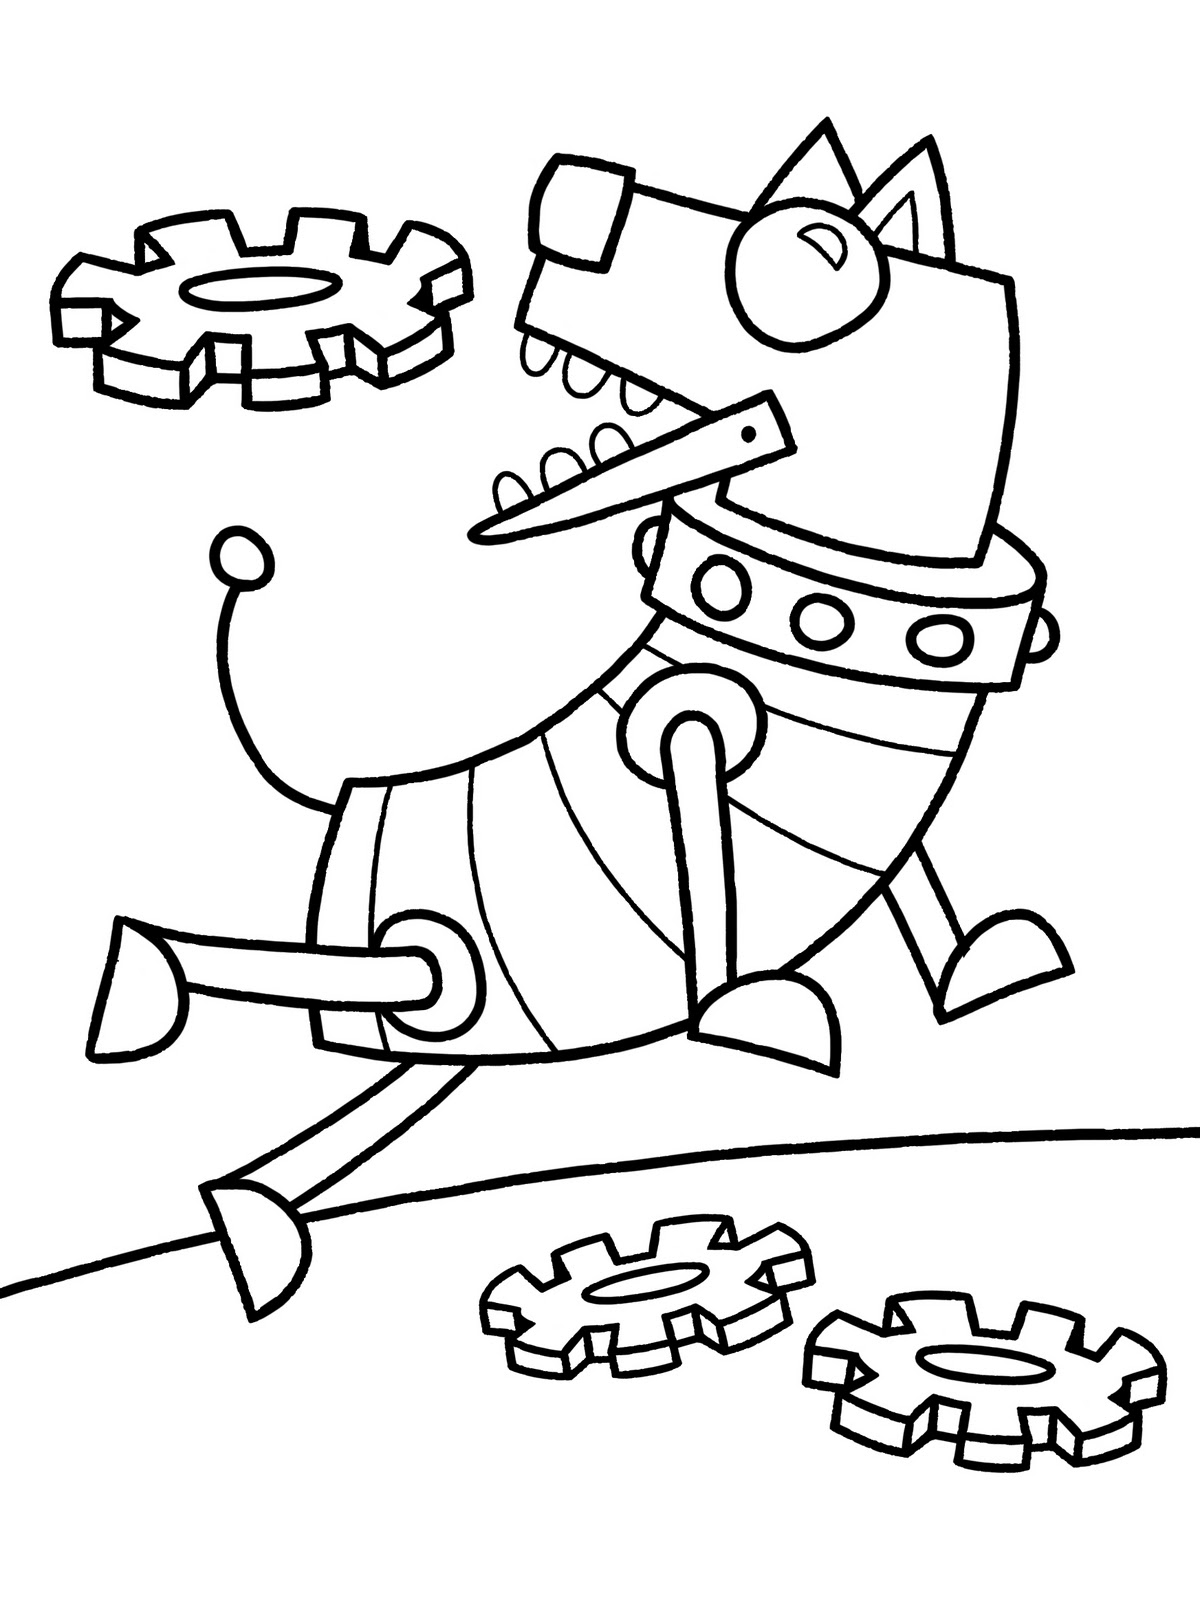 robot coloring picture robot colouring sheet 2 robots thecolouringbookorg coloring robot picture